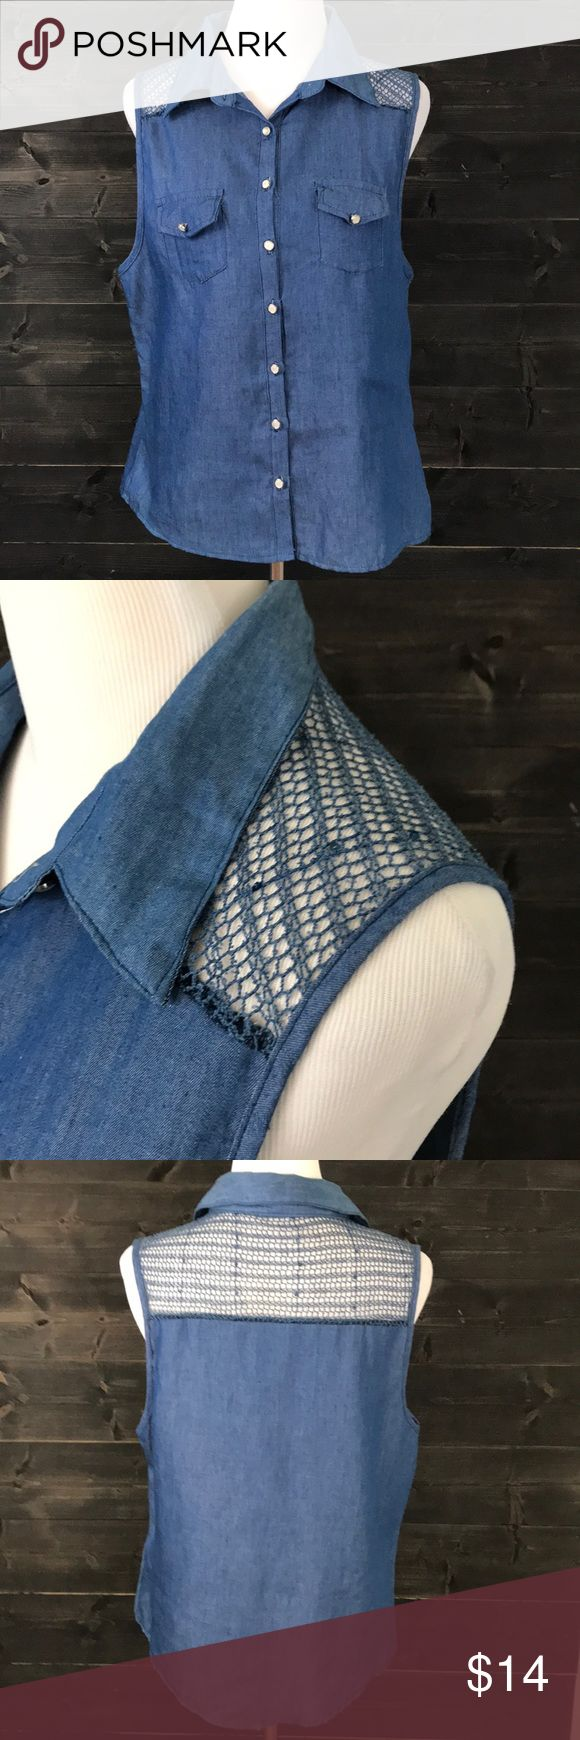 • ANGELUS • • Sleeveless Denim Shirt • Button Up • Mesh Shoulders with Sequins • Excellent Used Condition  • Offers Welcomed Angelus Tops